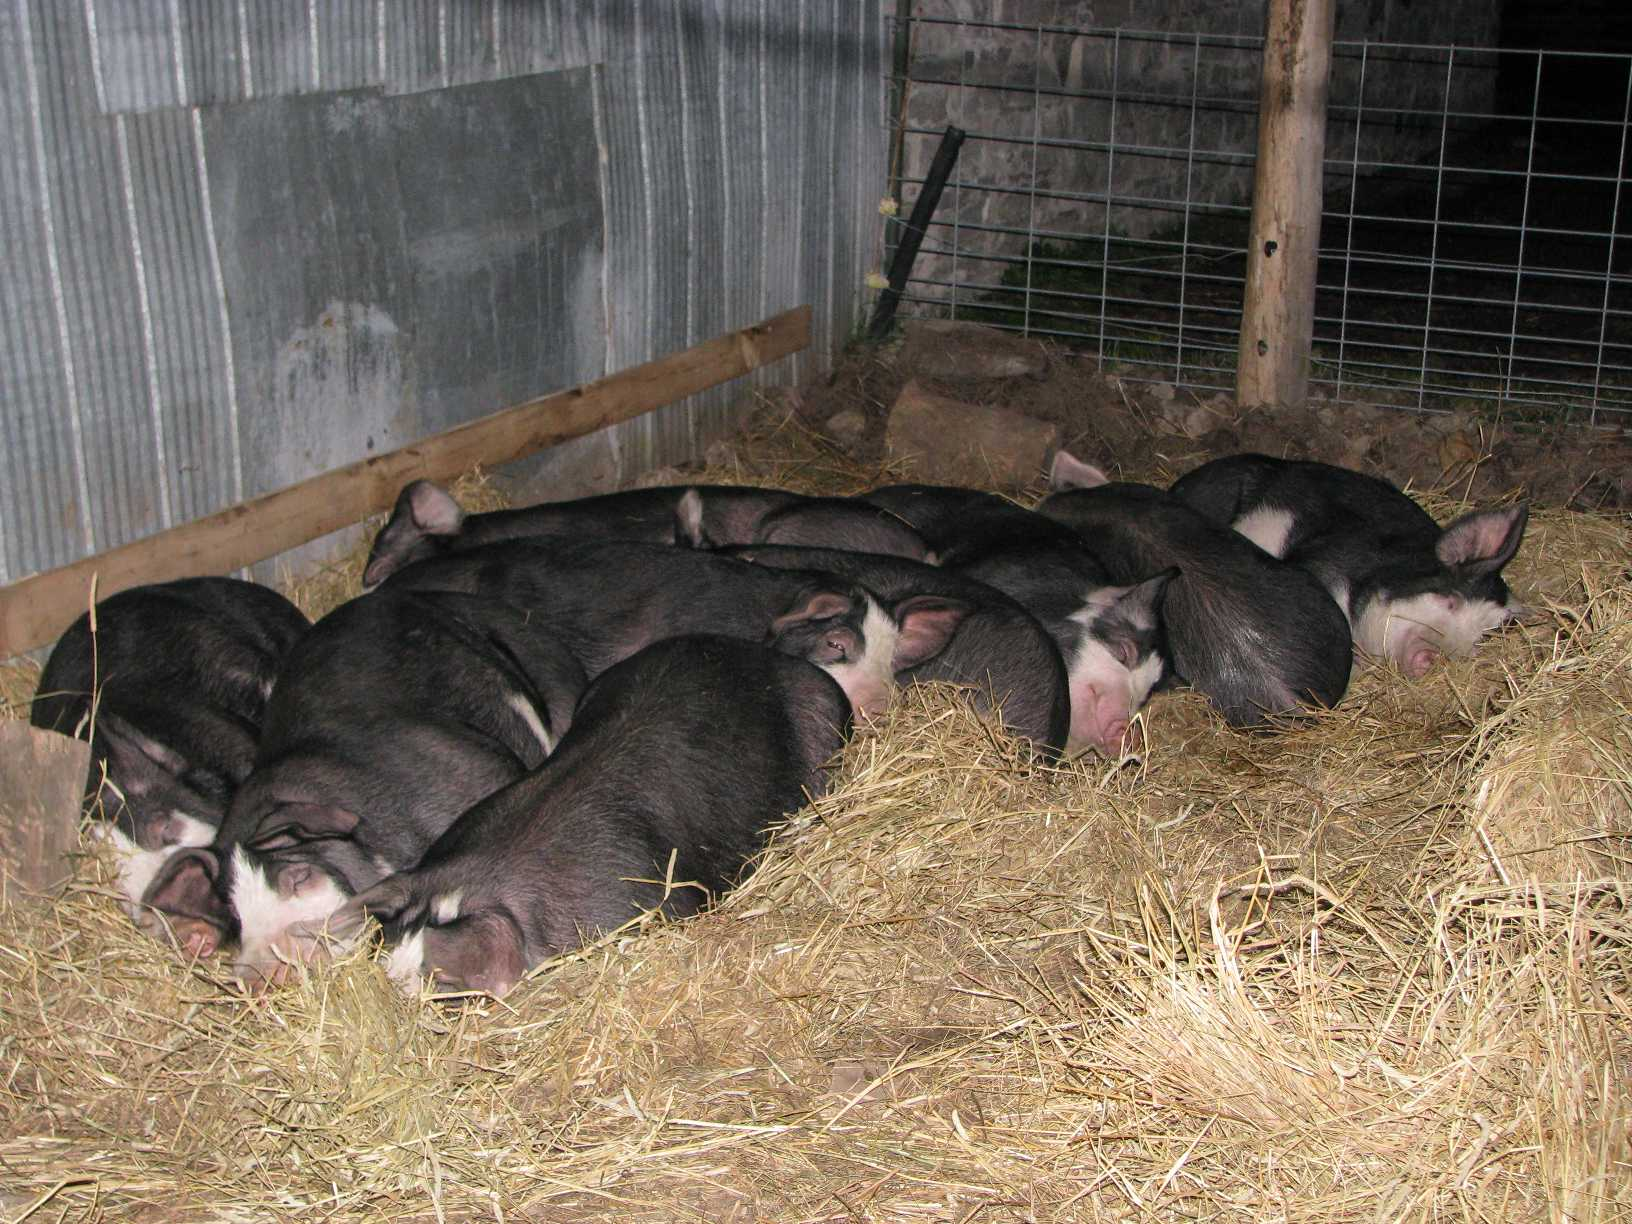 Sleeping Berkshire hogs ~6 months old